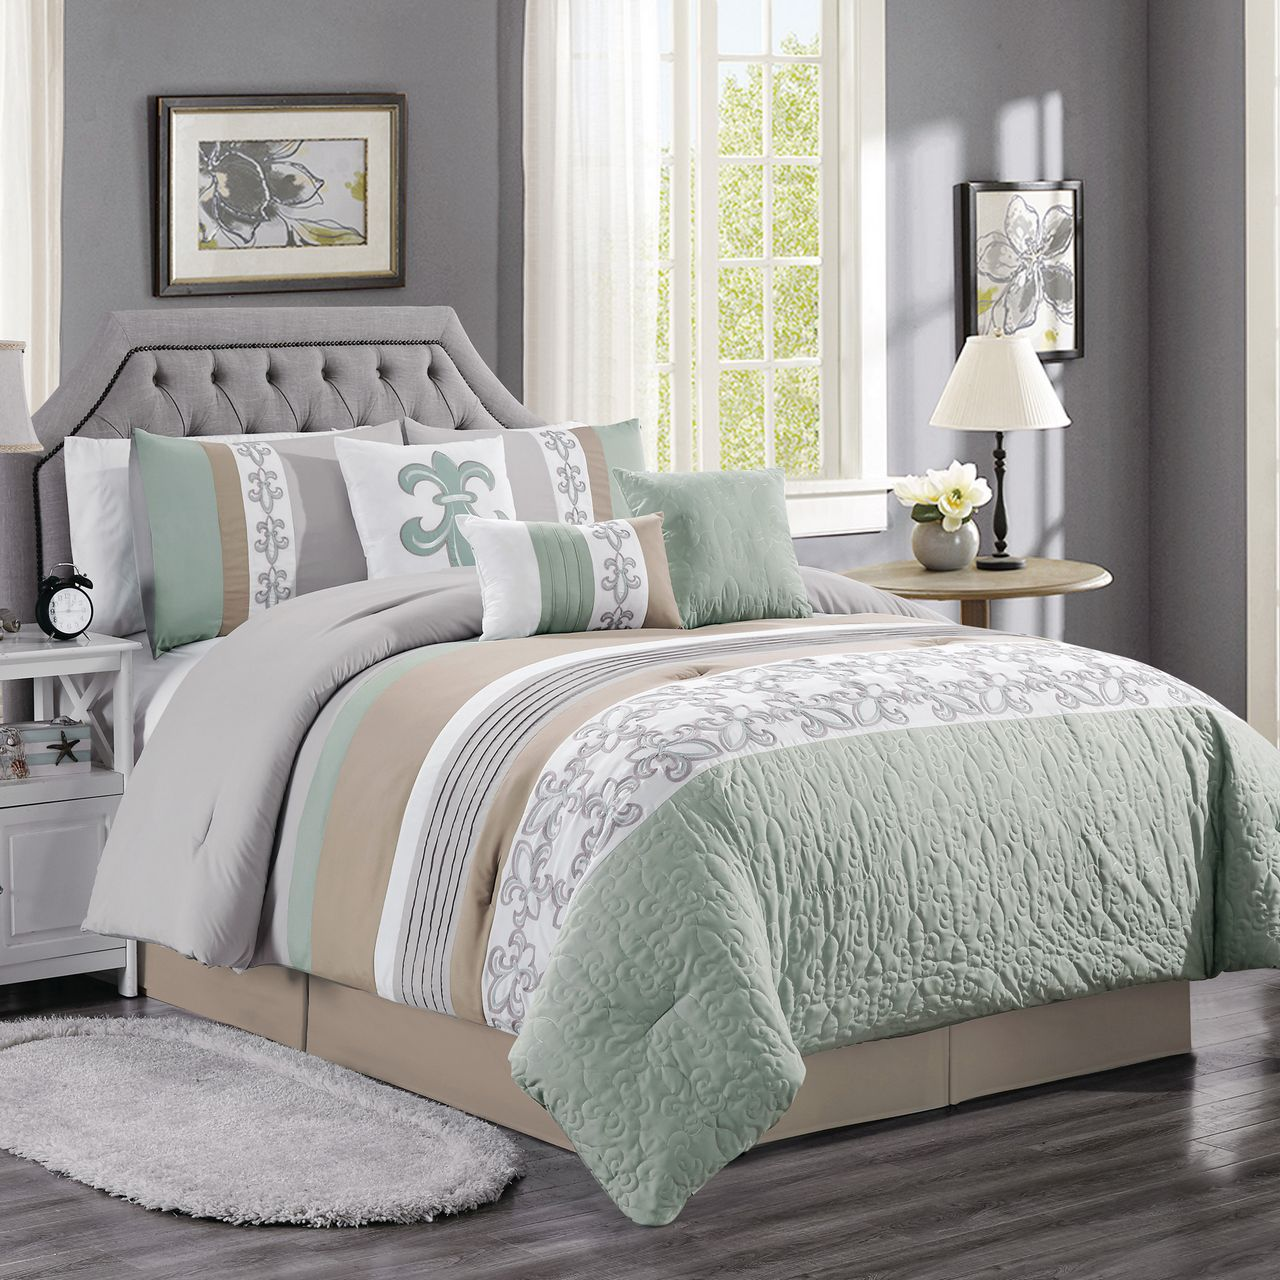 11 Piece Osier Sage/Taupe/Gray Bed in a Bag Set